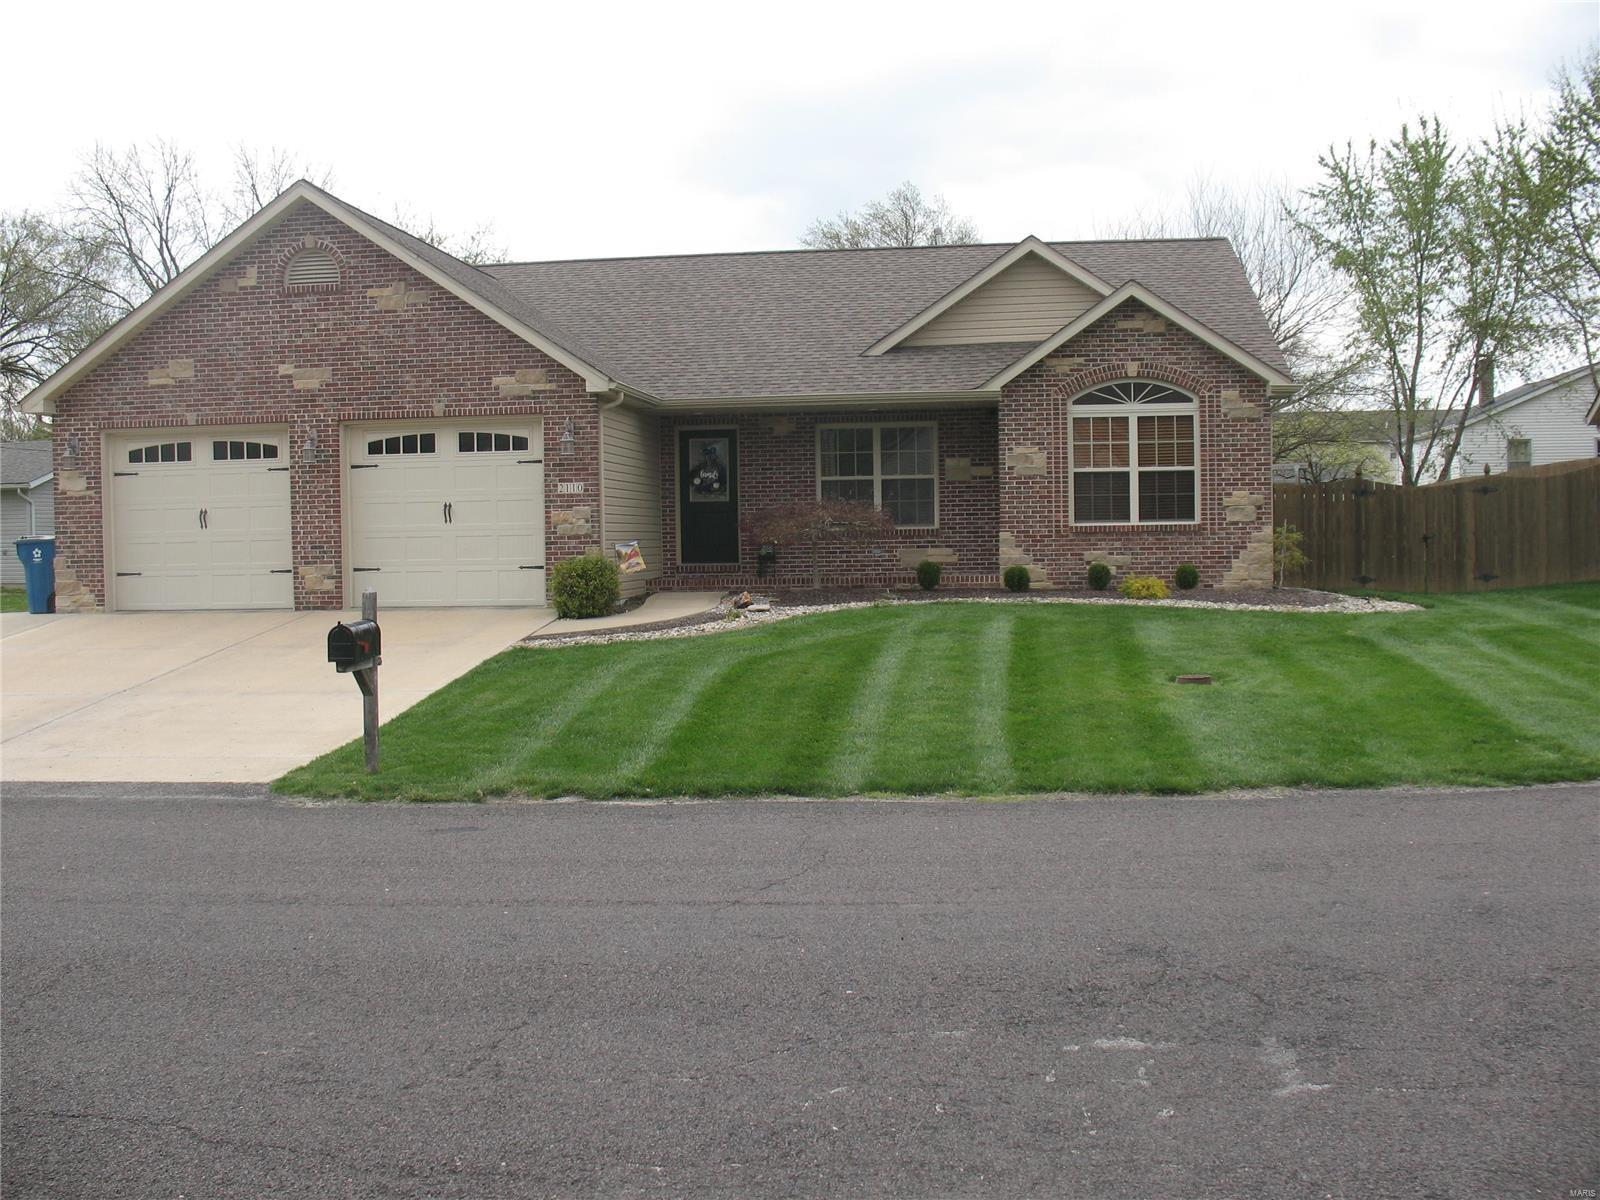 2110 Williams Property Photo - Maryville, IL real estate listing